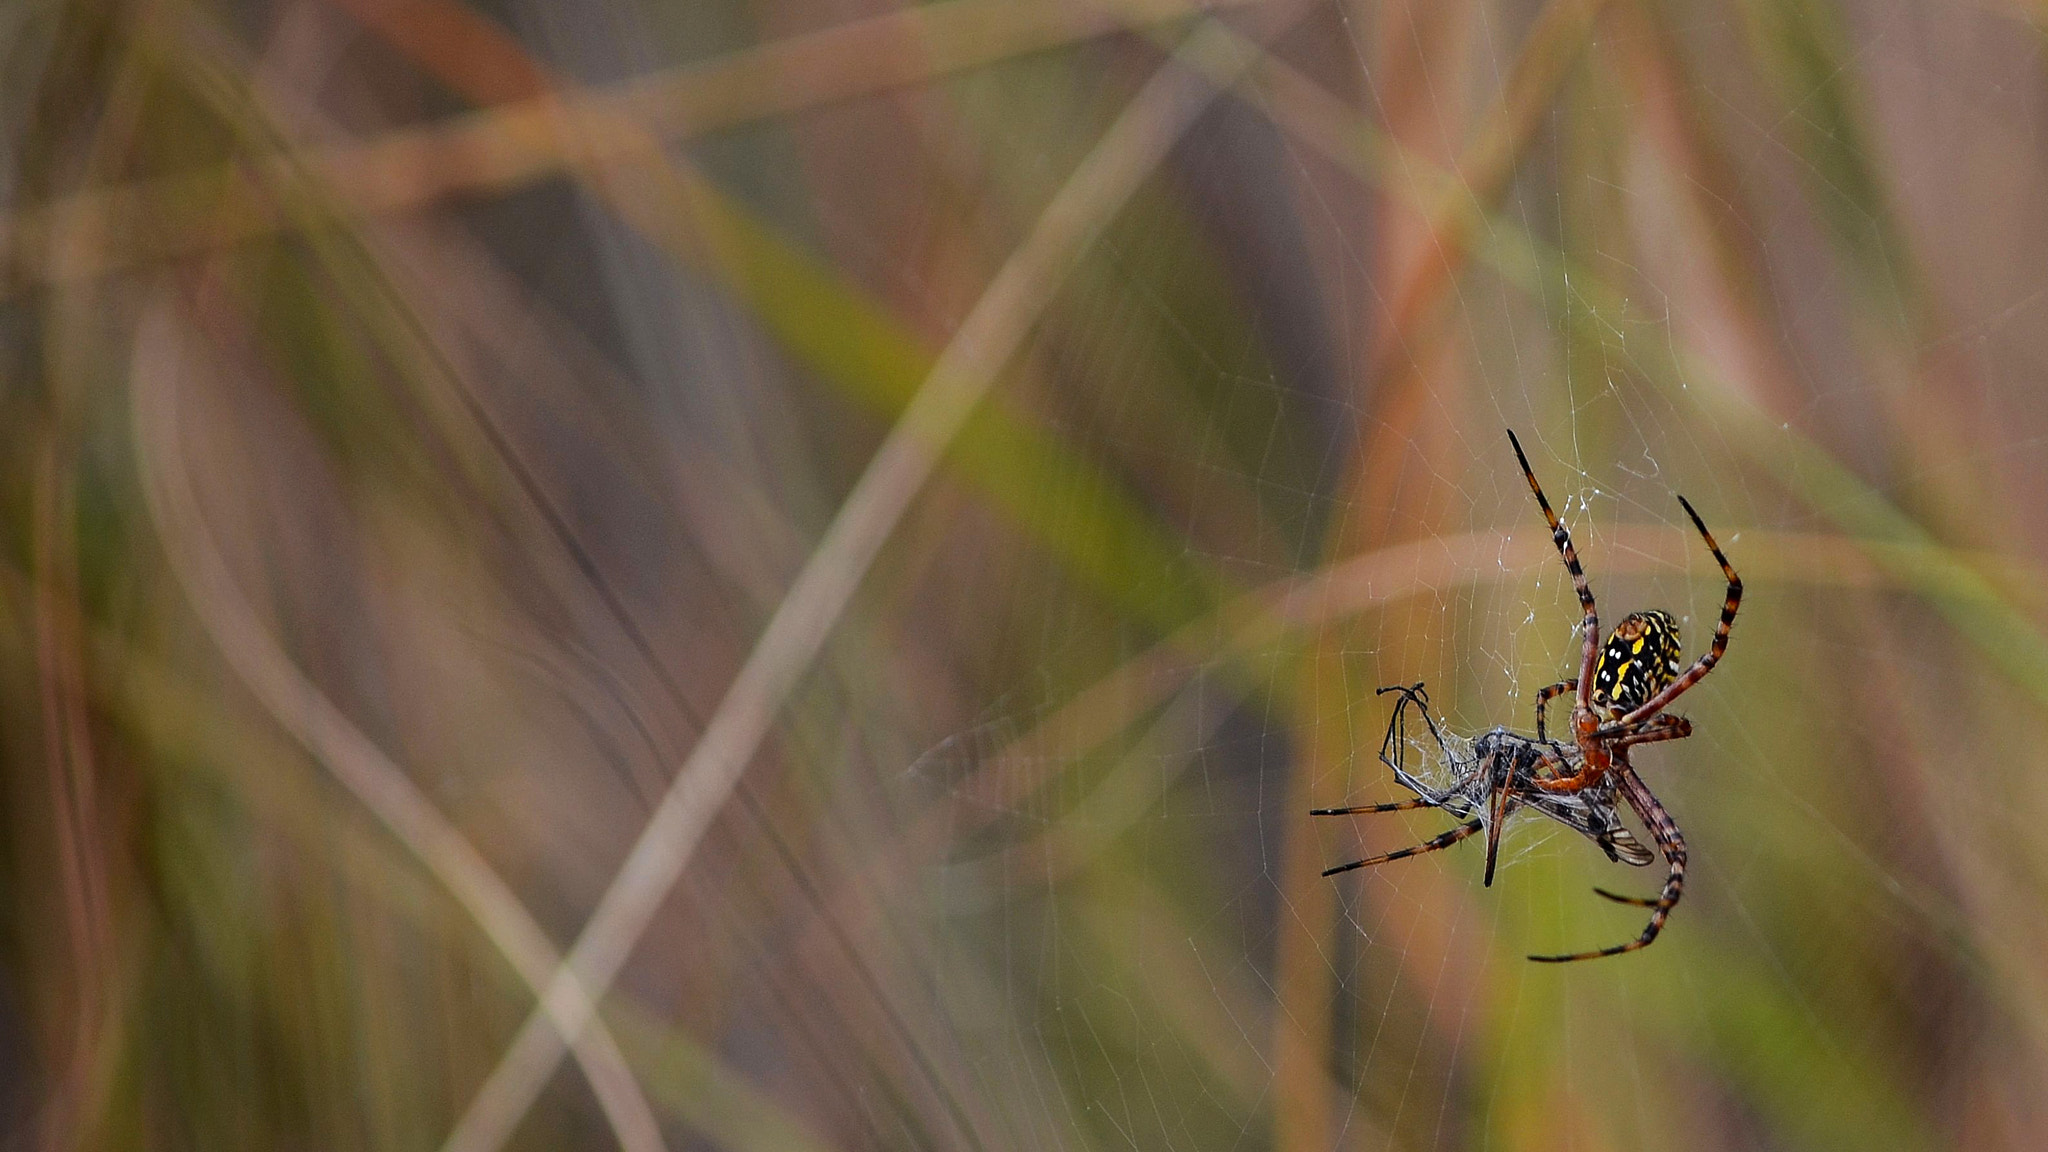 Photograph Along Came a Spider by Glen Hadiardja on 500px